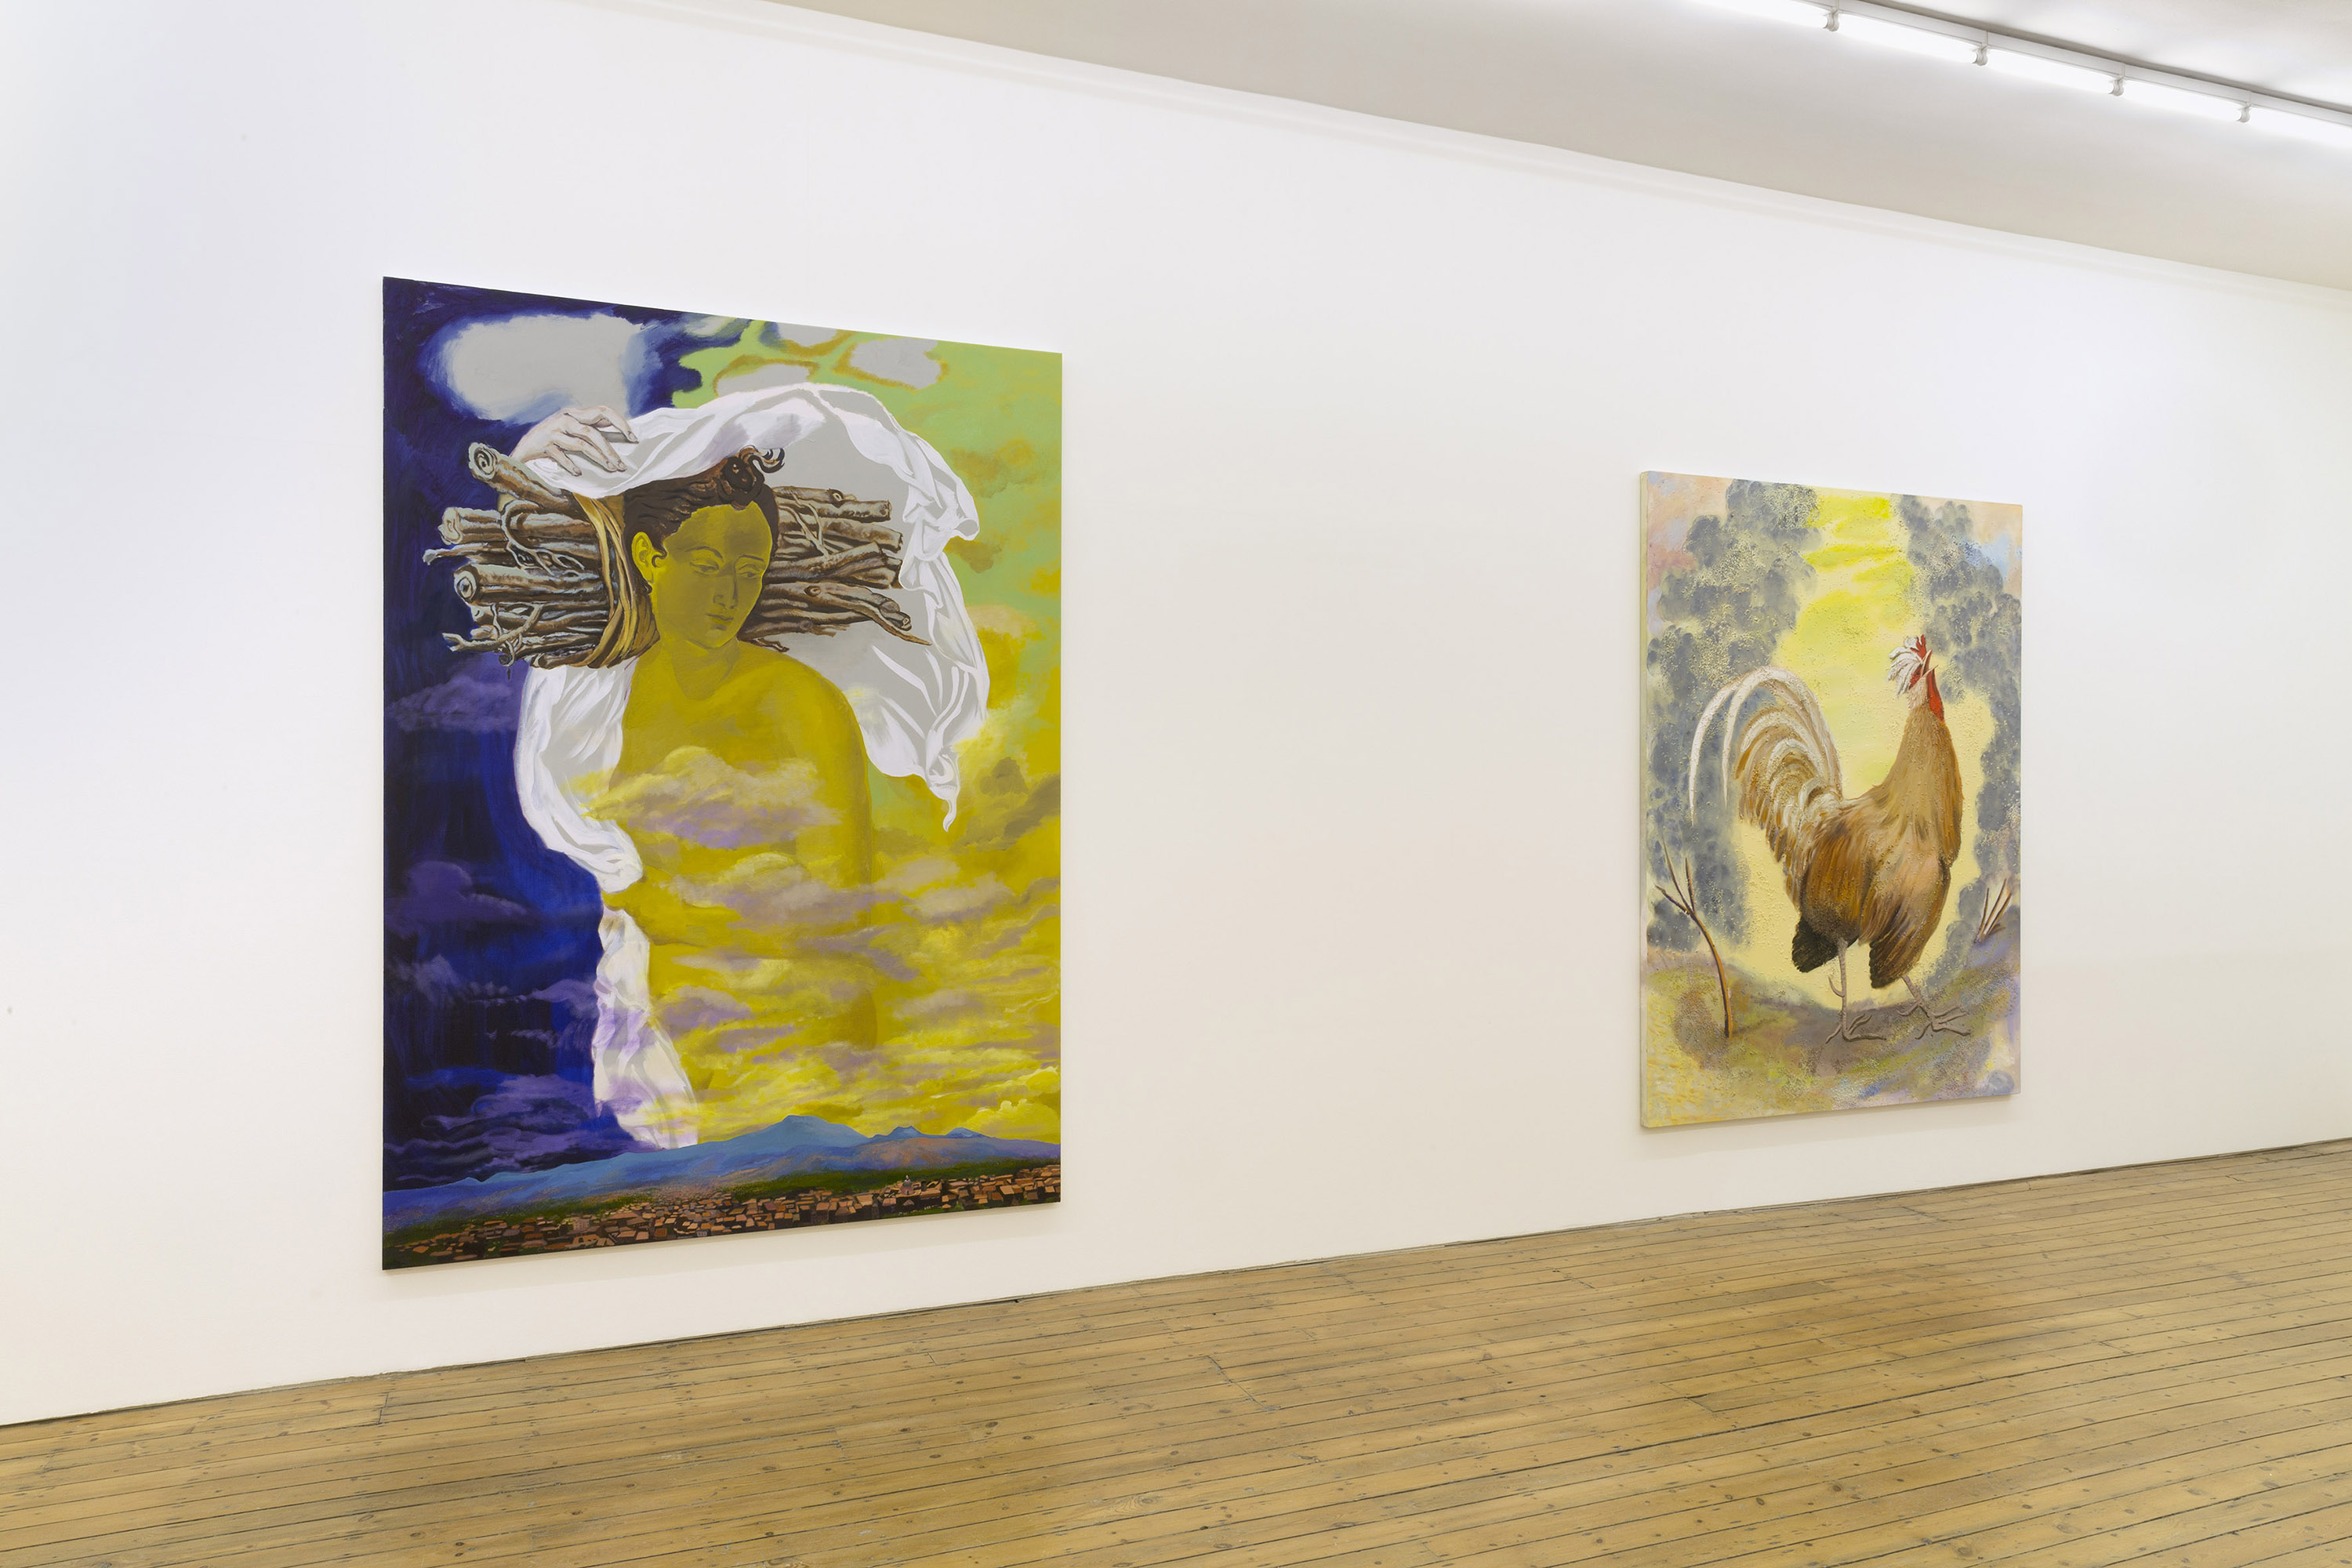 2 - Allison Katz at The Approach London